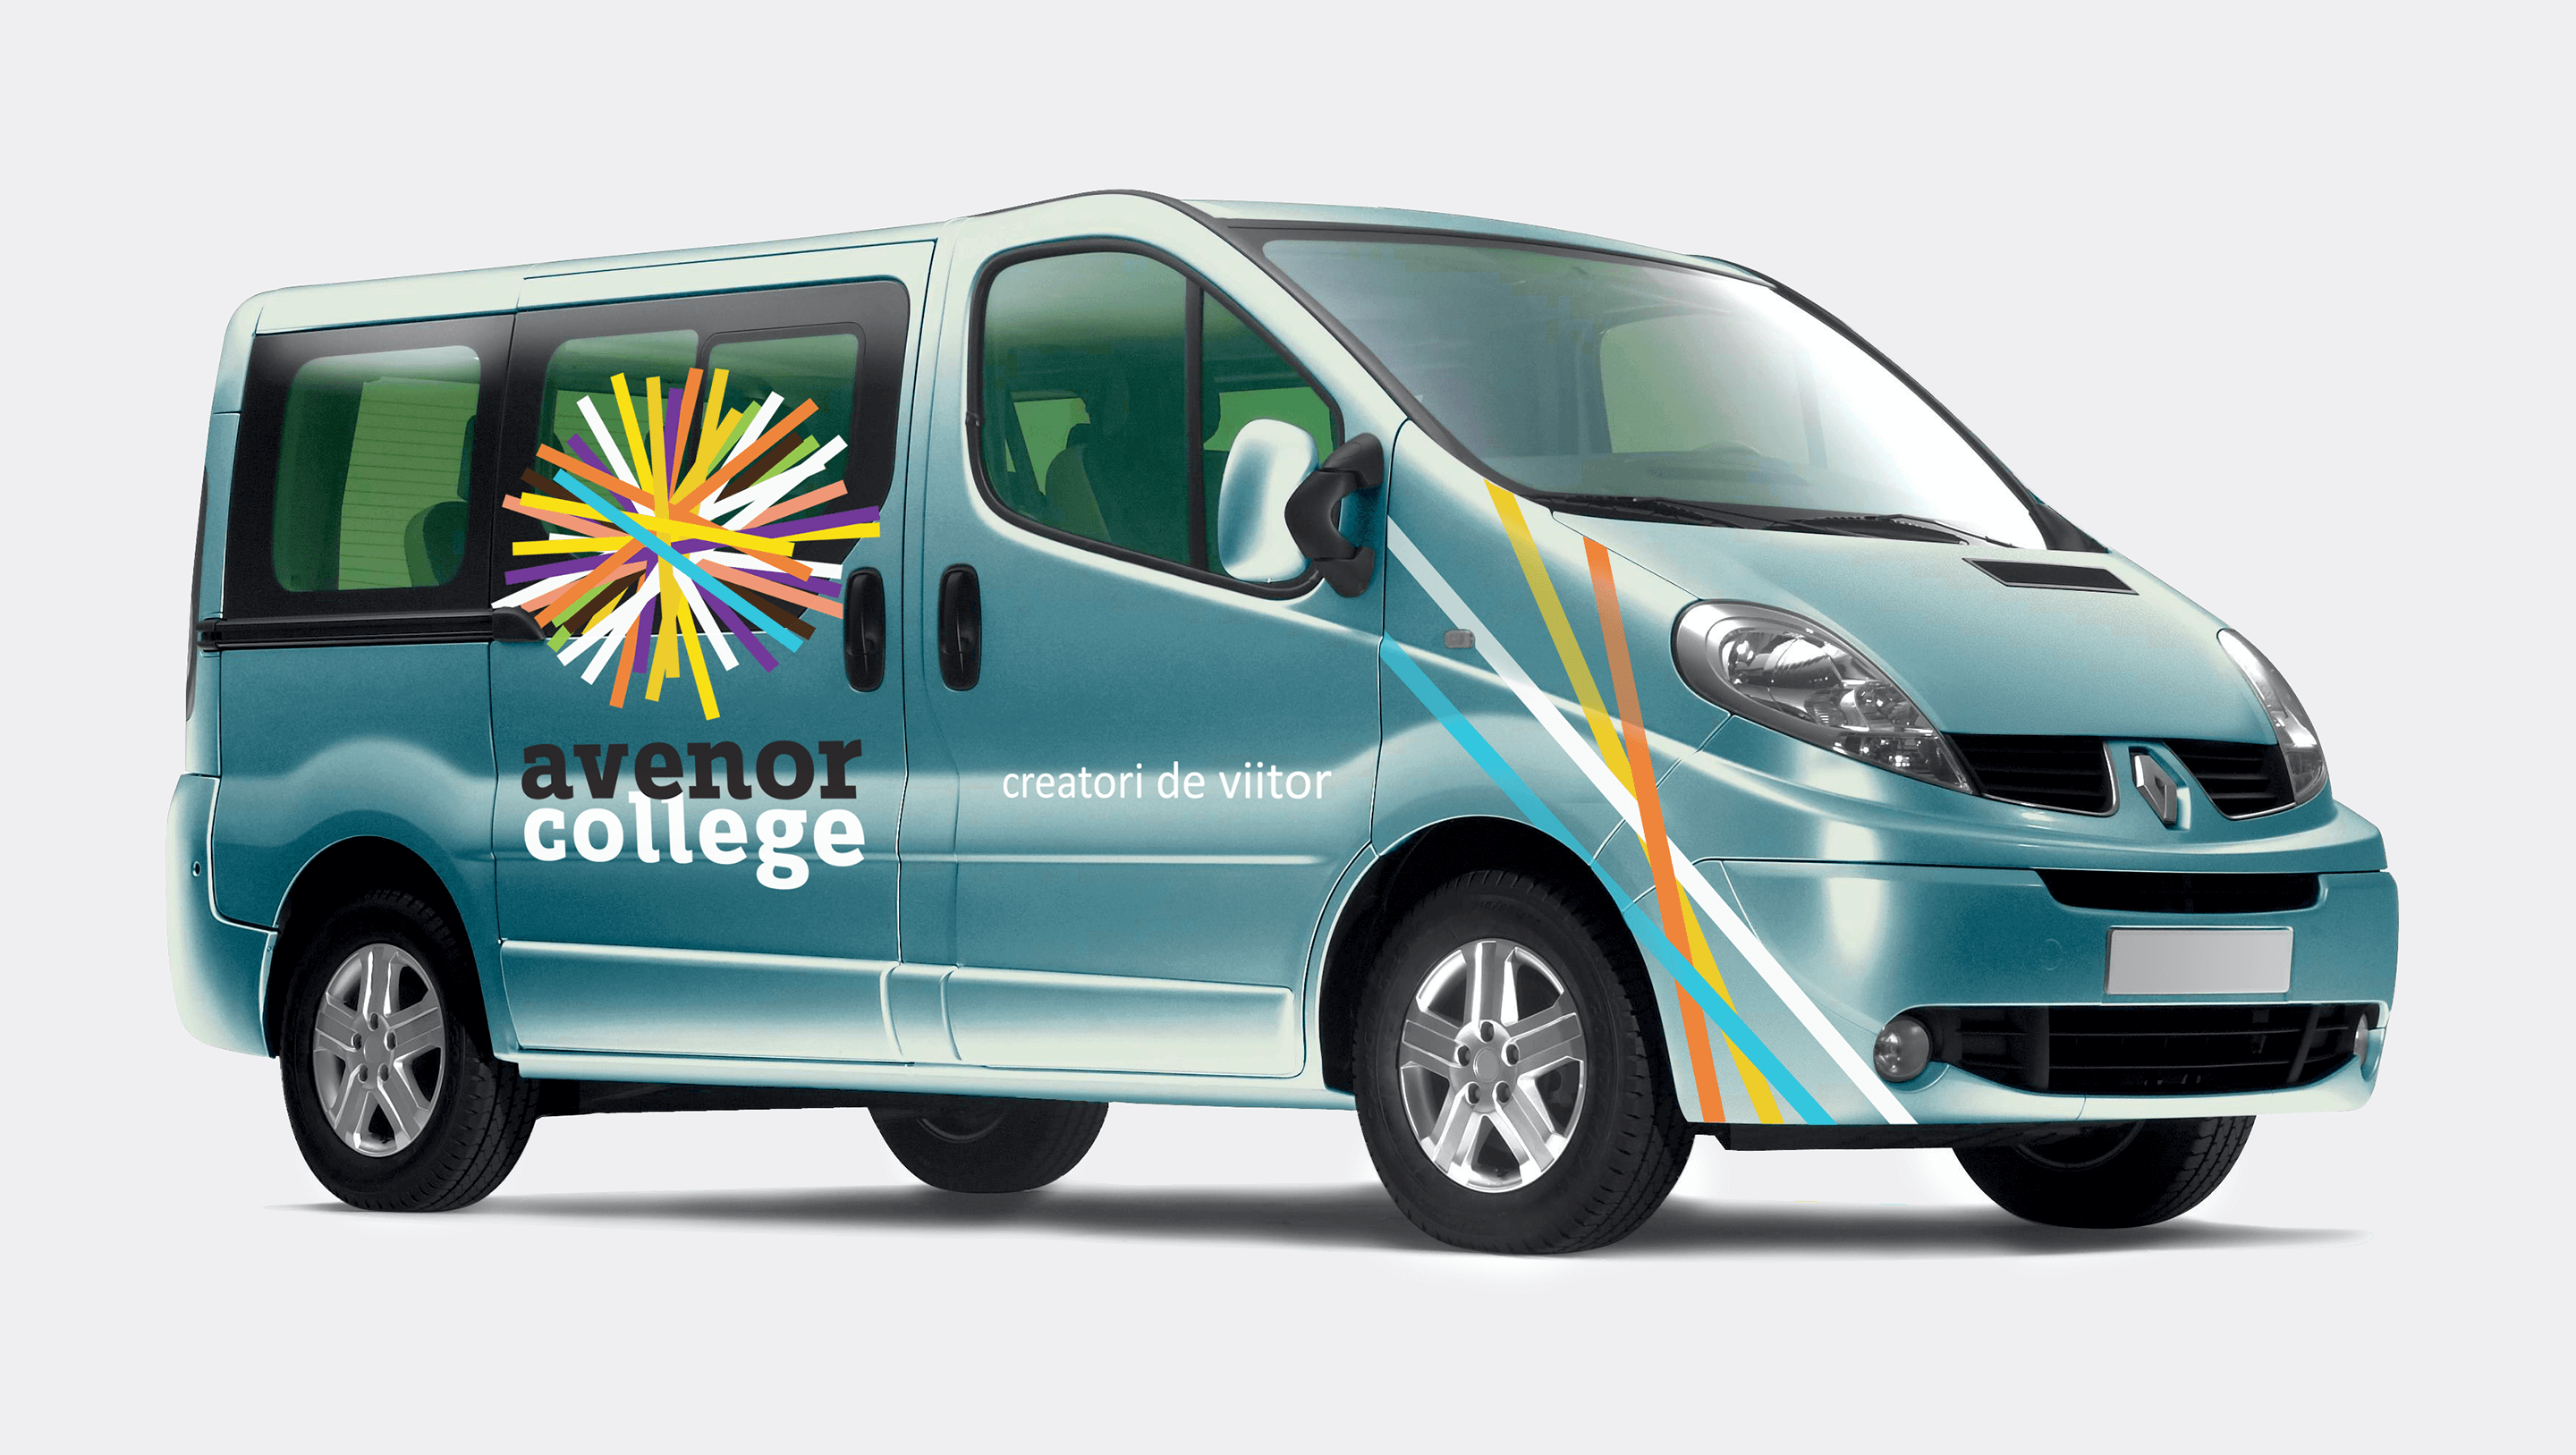 Avenor College van